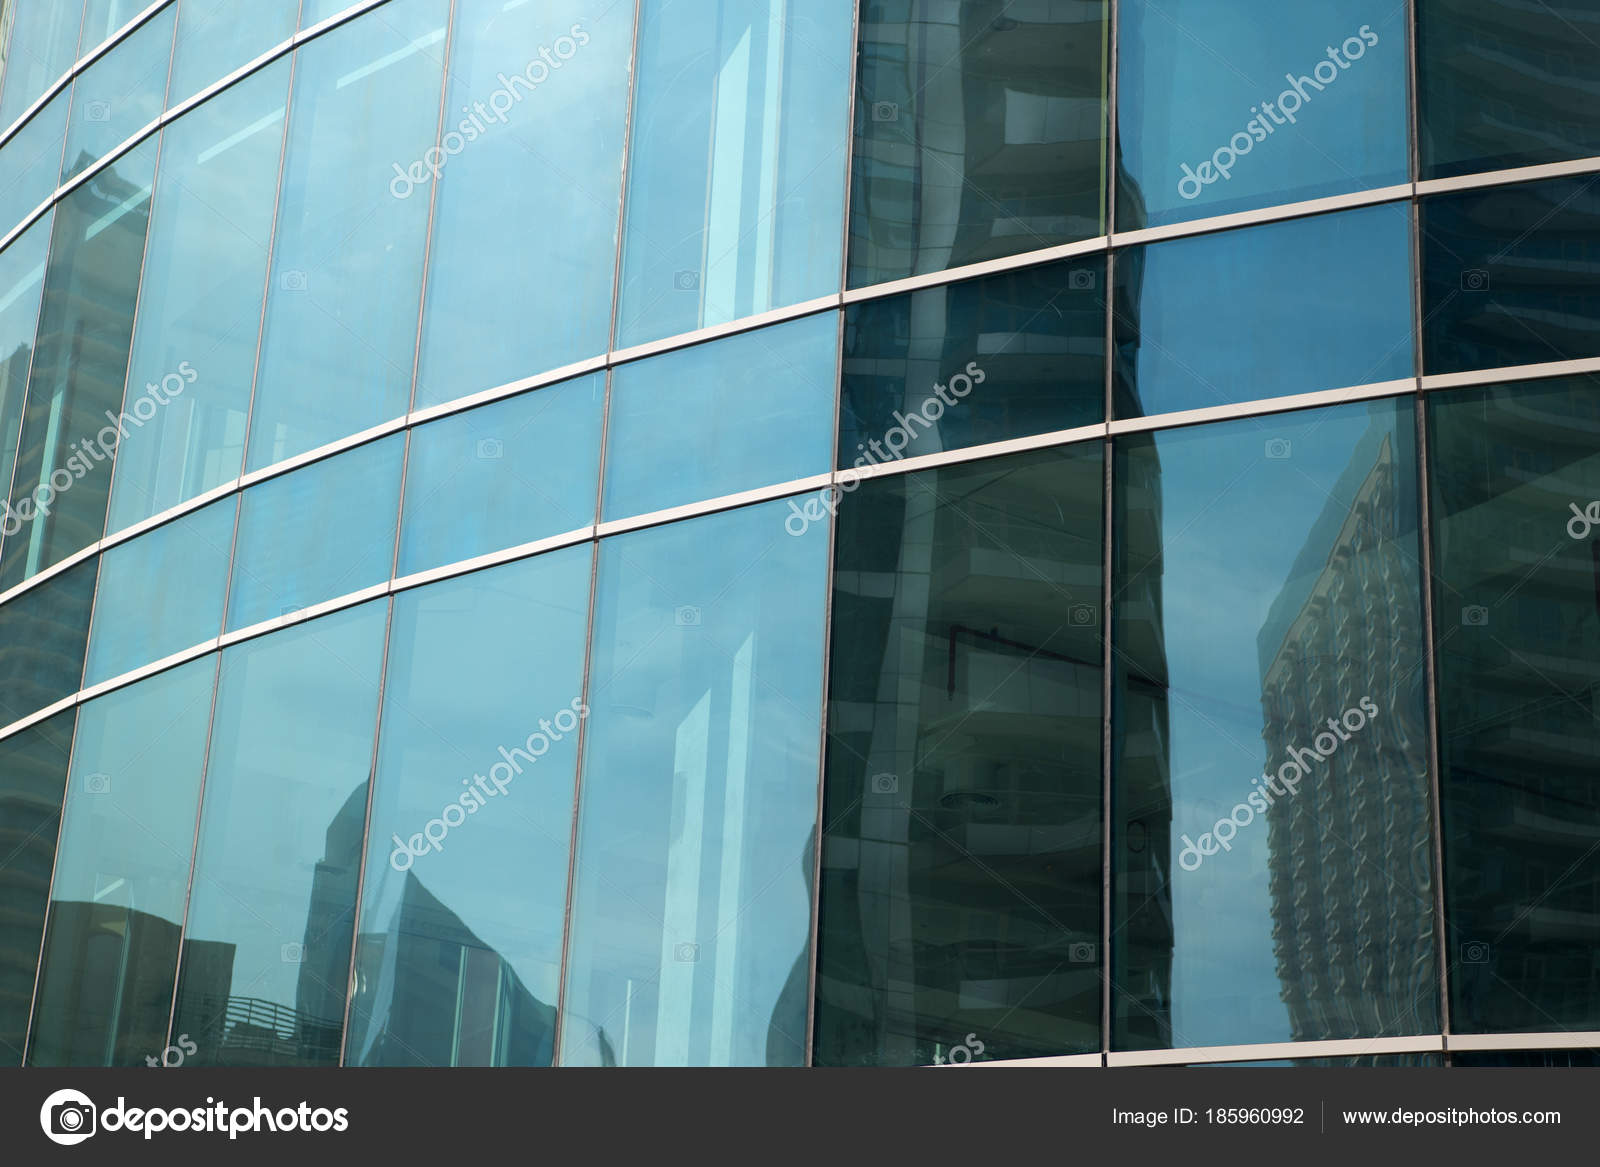 Glass facade design office building Interior Glass Facade Panels Of Office Building Architecture Background Construction Structure House Property Architecture Design Decor Exterior Depositphotos Glass Facade Panels Of Office Building Architecture Background